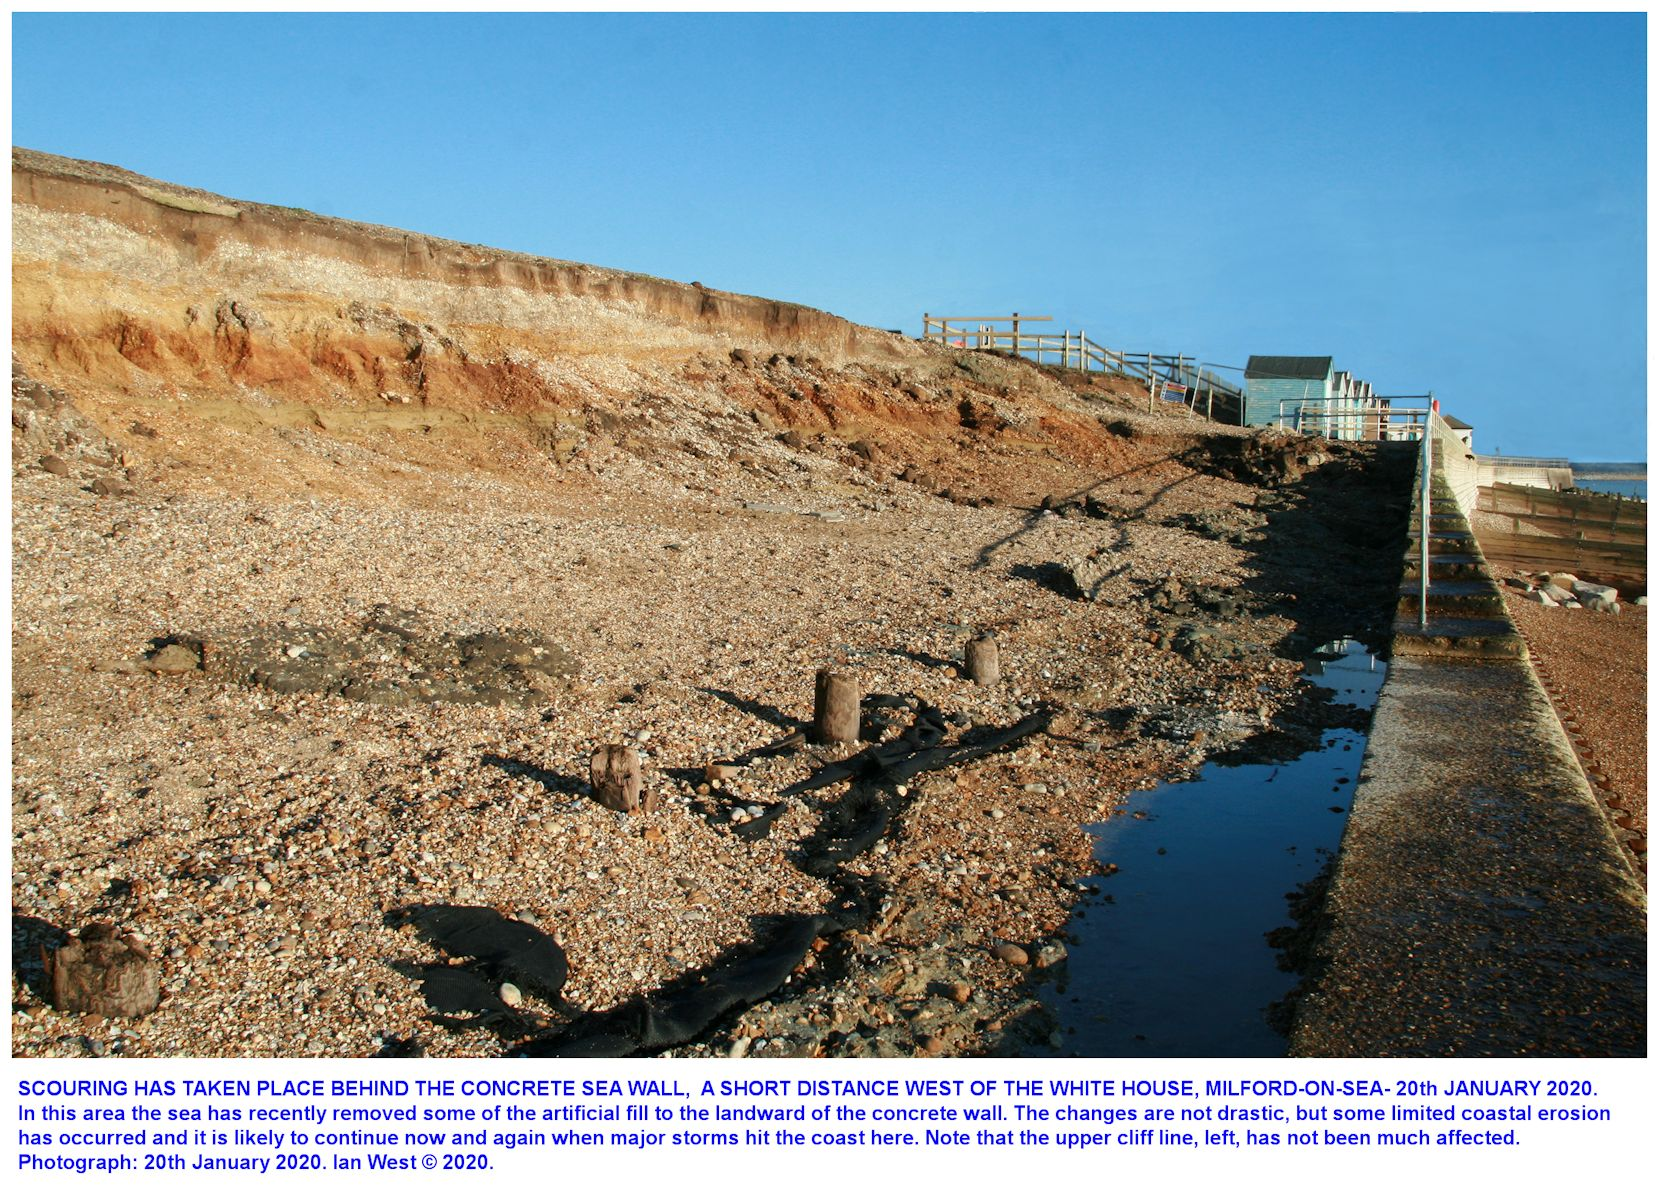 Details of some erosion to the west of the White House, Milford-on-Sea, Hampshire, as seen on the 20th January 2020